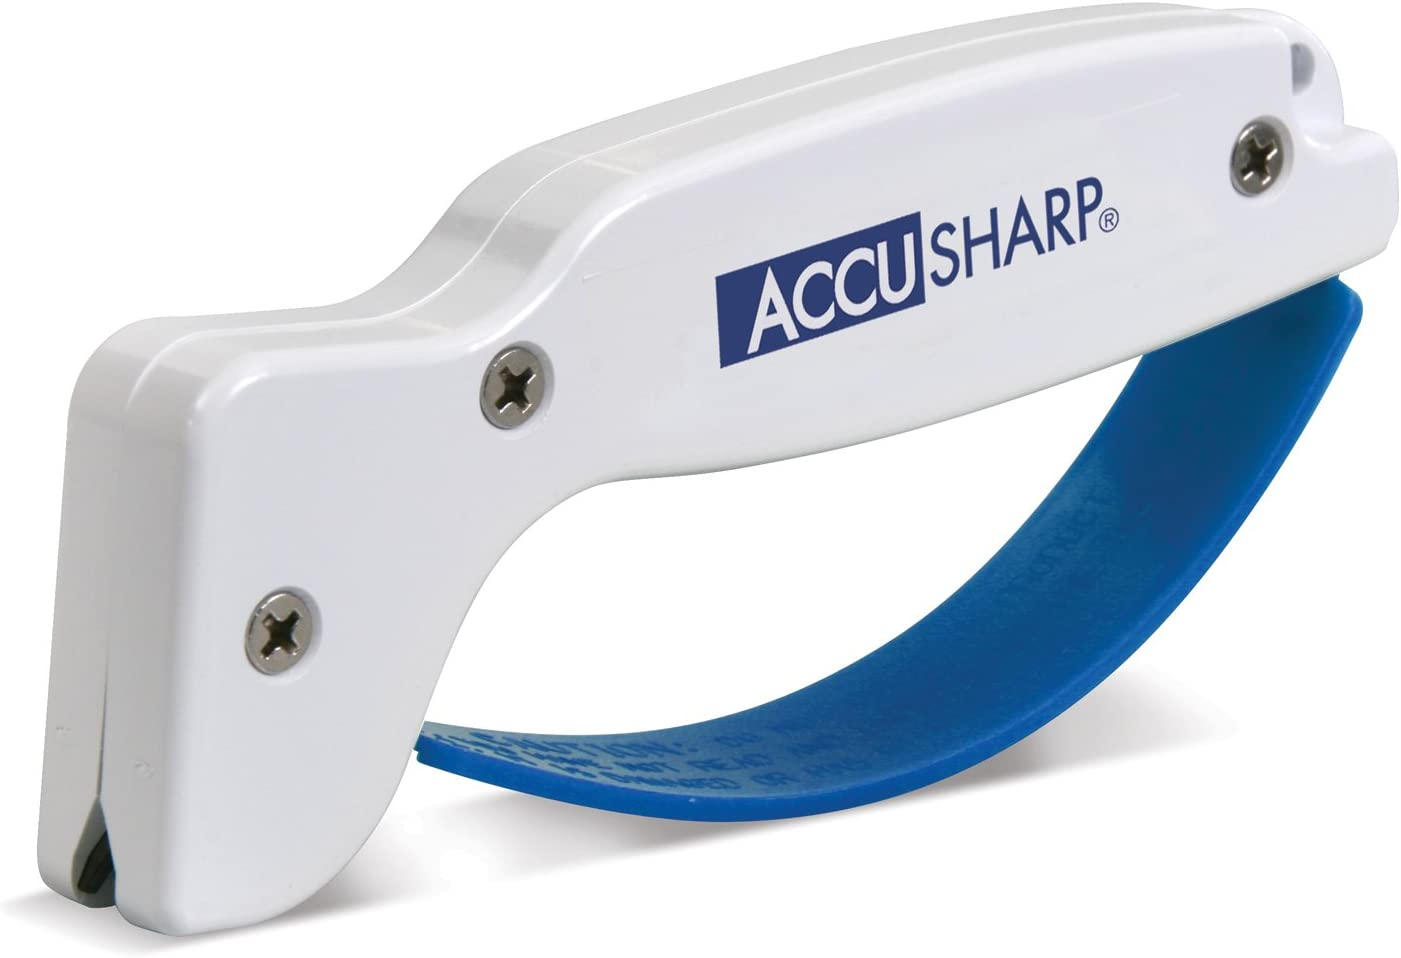 4. AccuSharp 001C Knife Sharpener